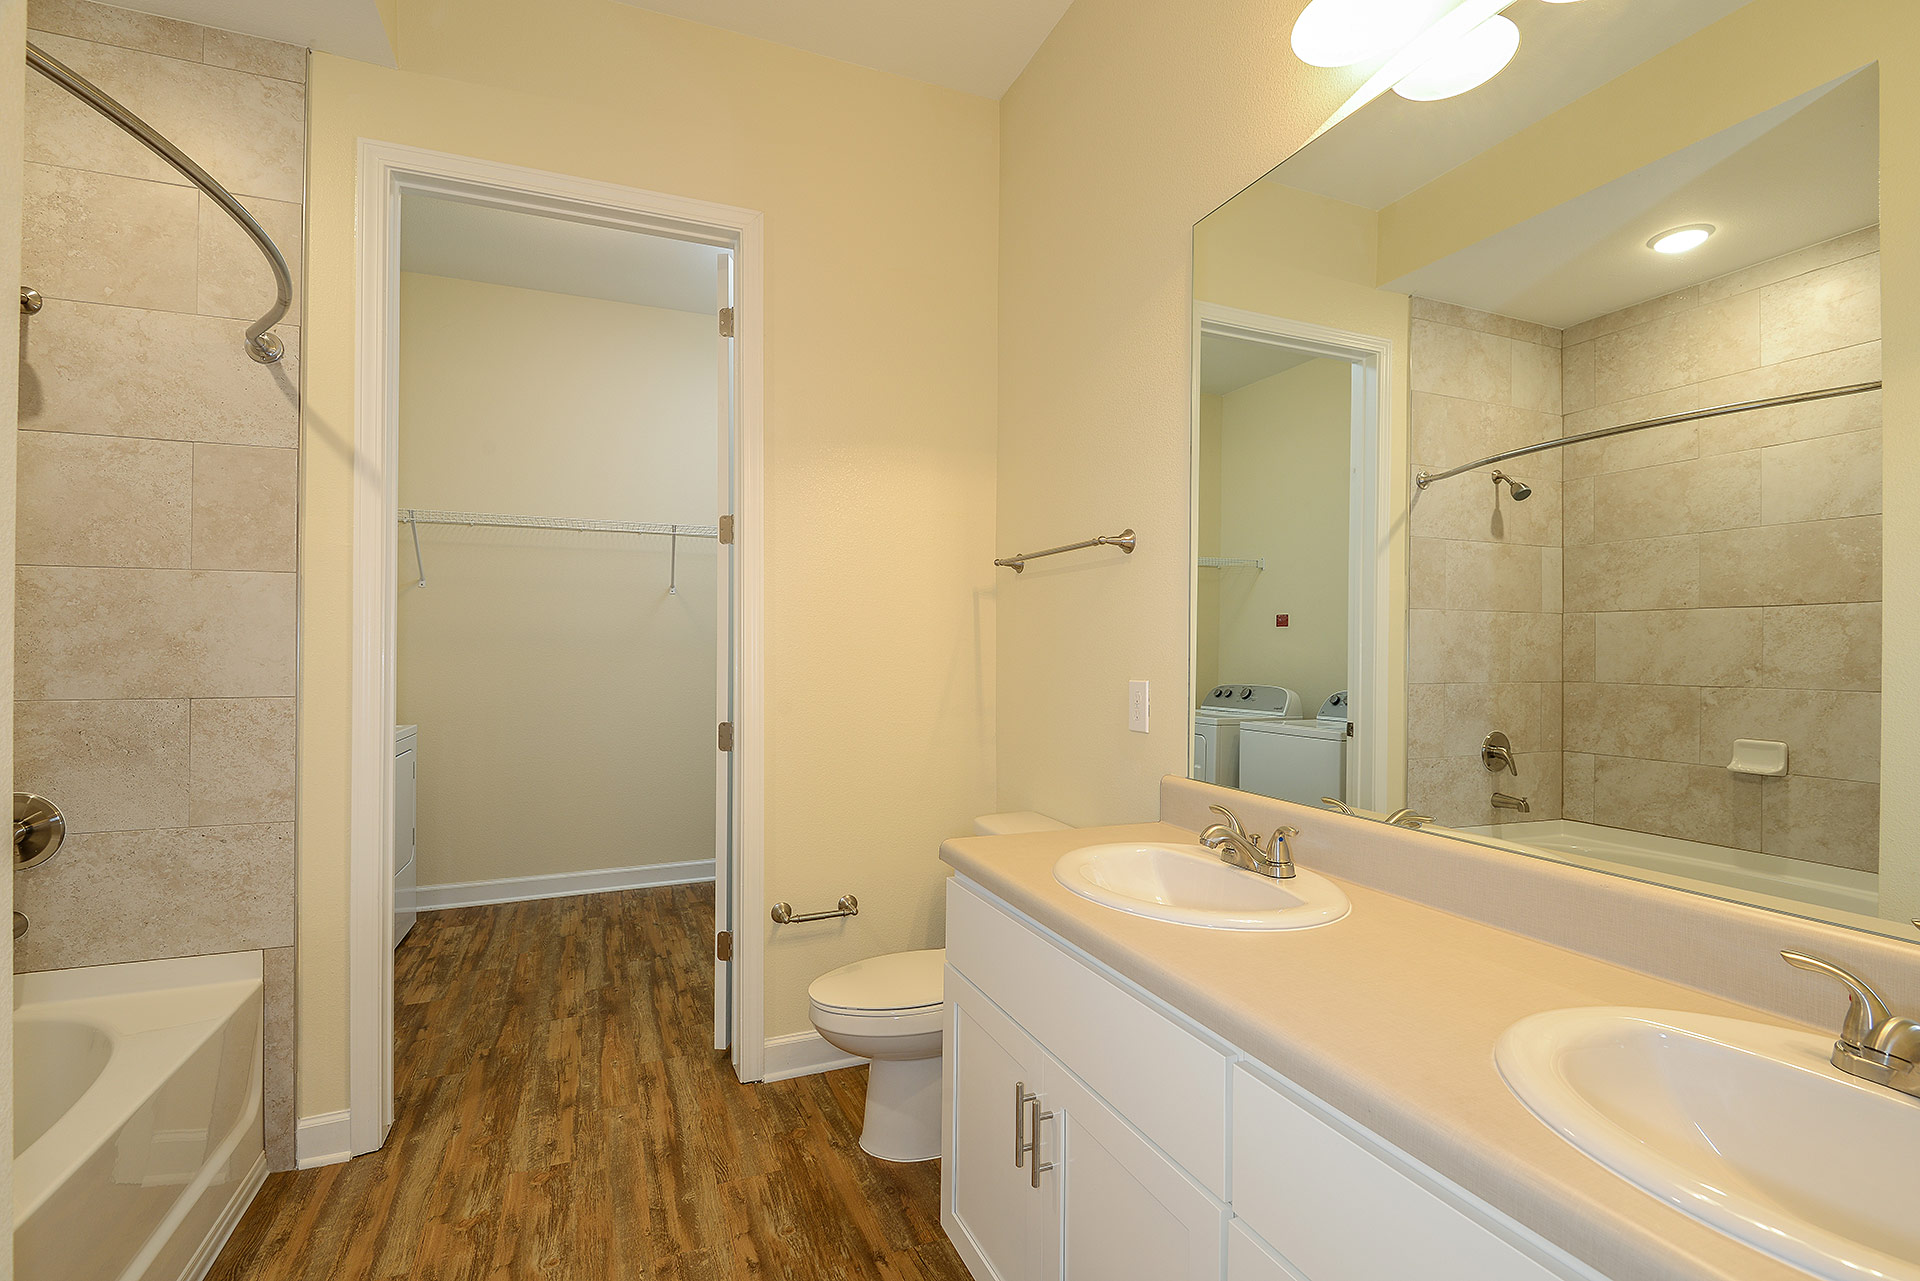 Wooden floor bathroom unit